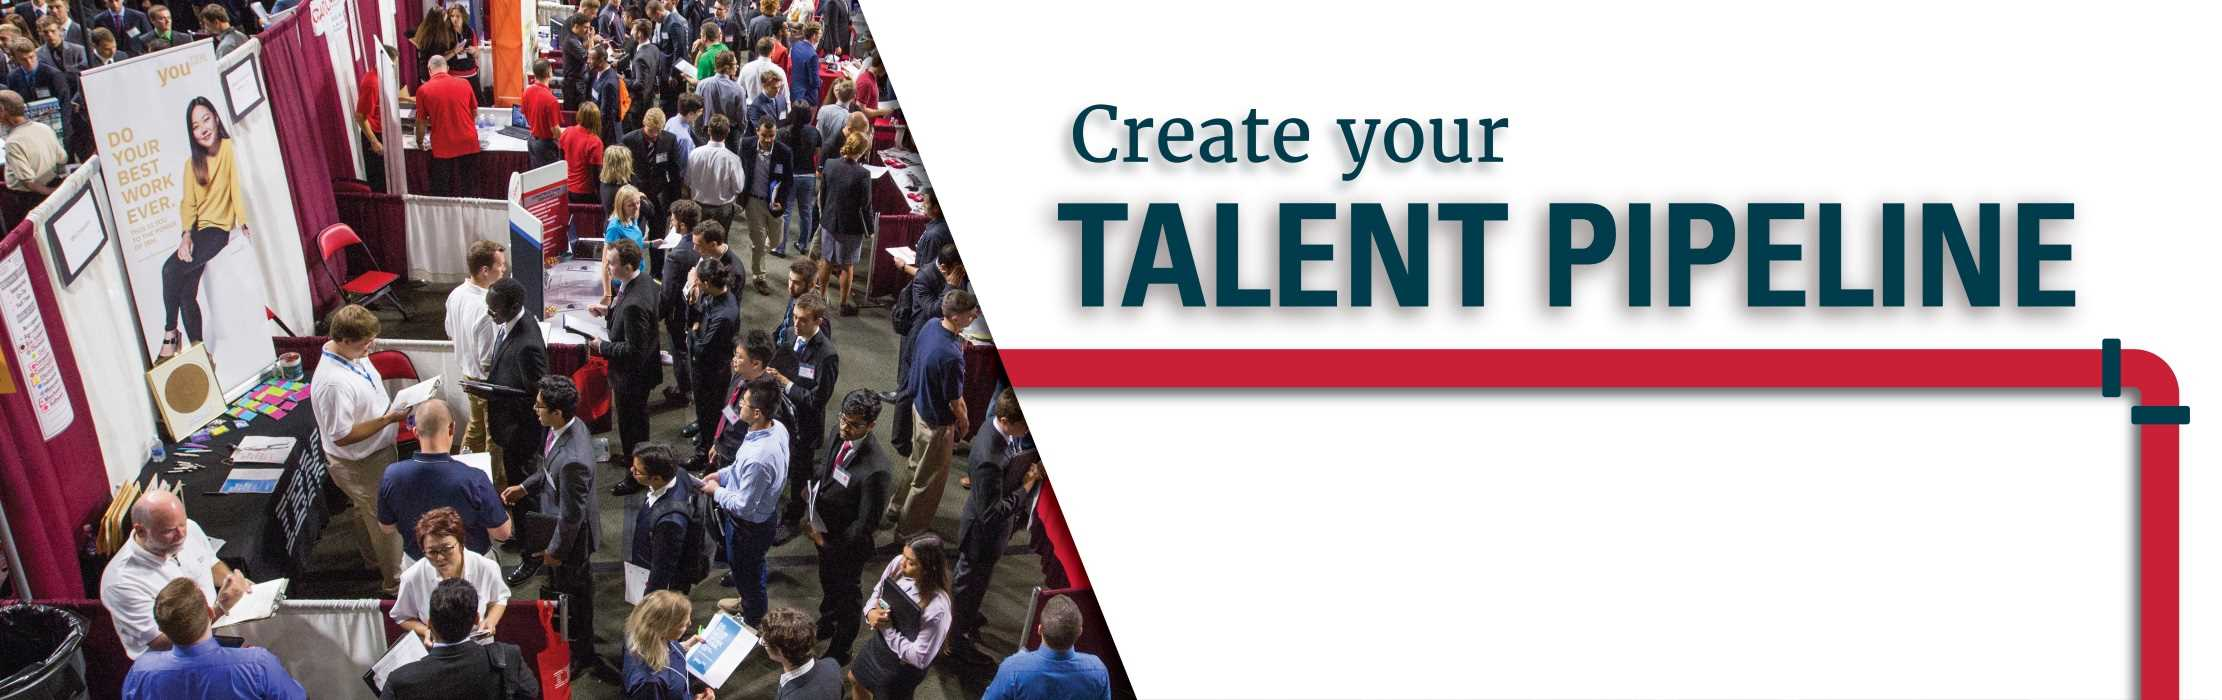 Iowa State University Career Fair: Create your talent pipeline.